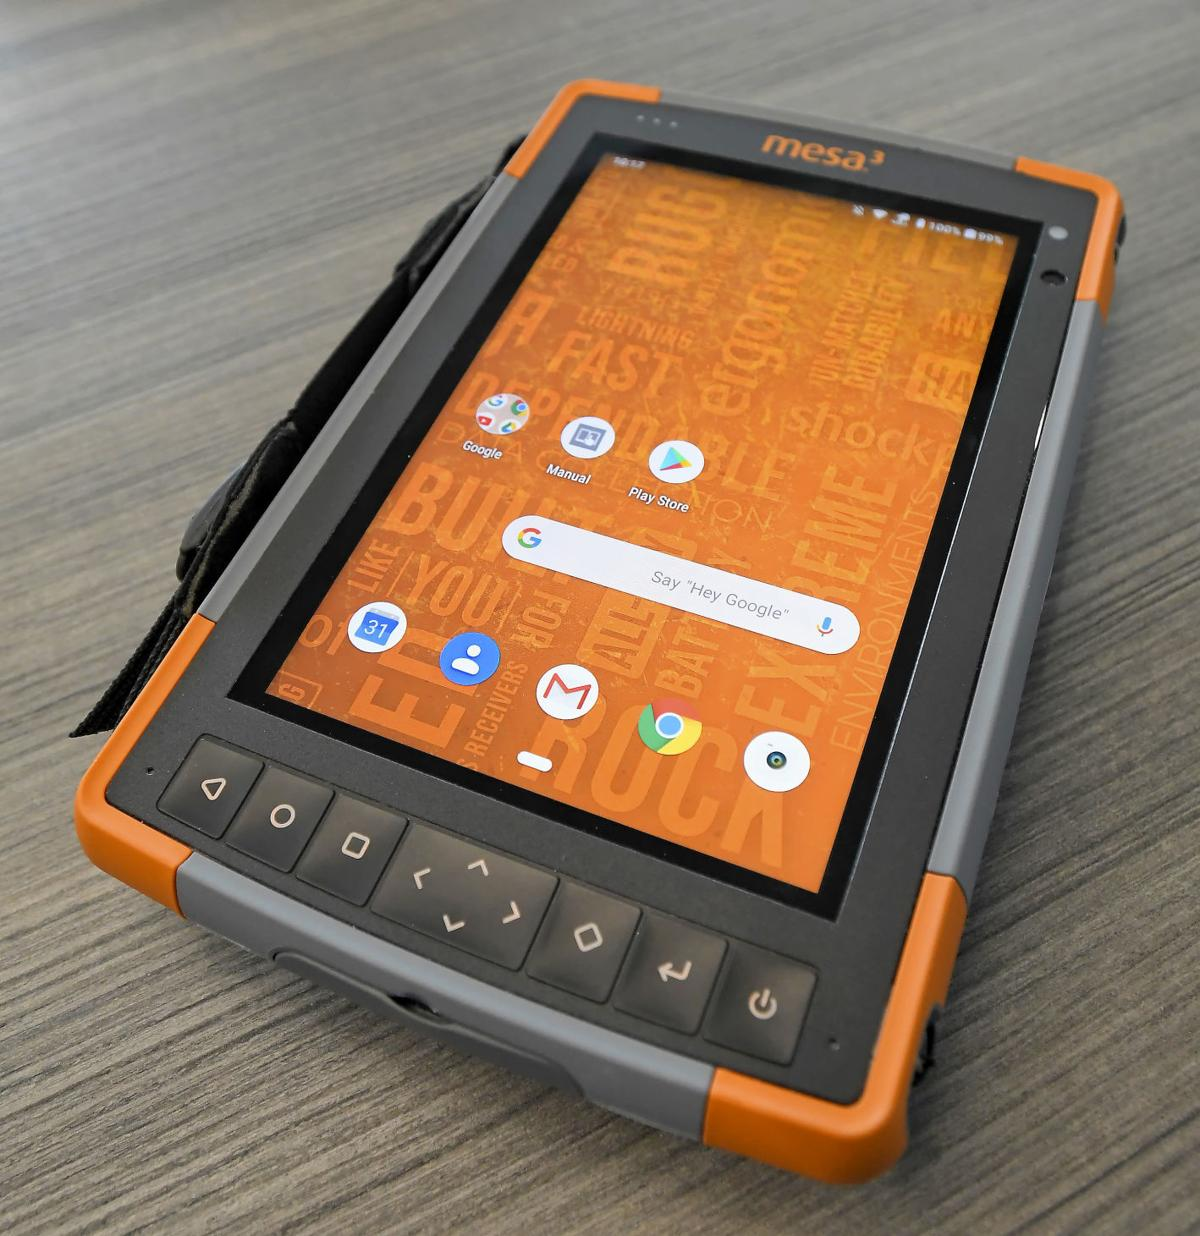 Rugged Tablet Running Windows